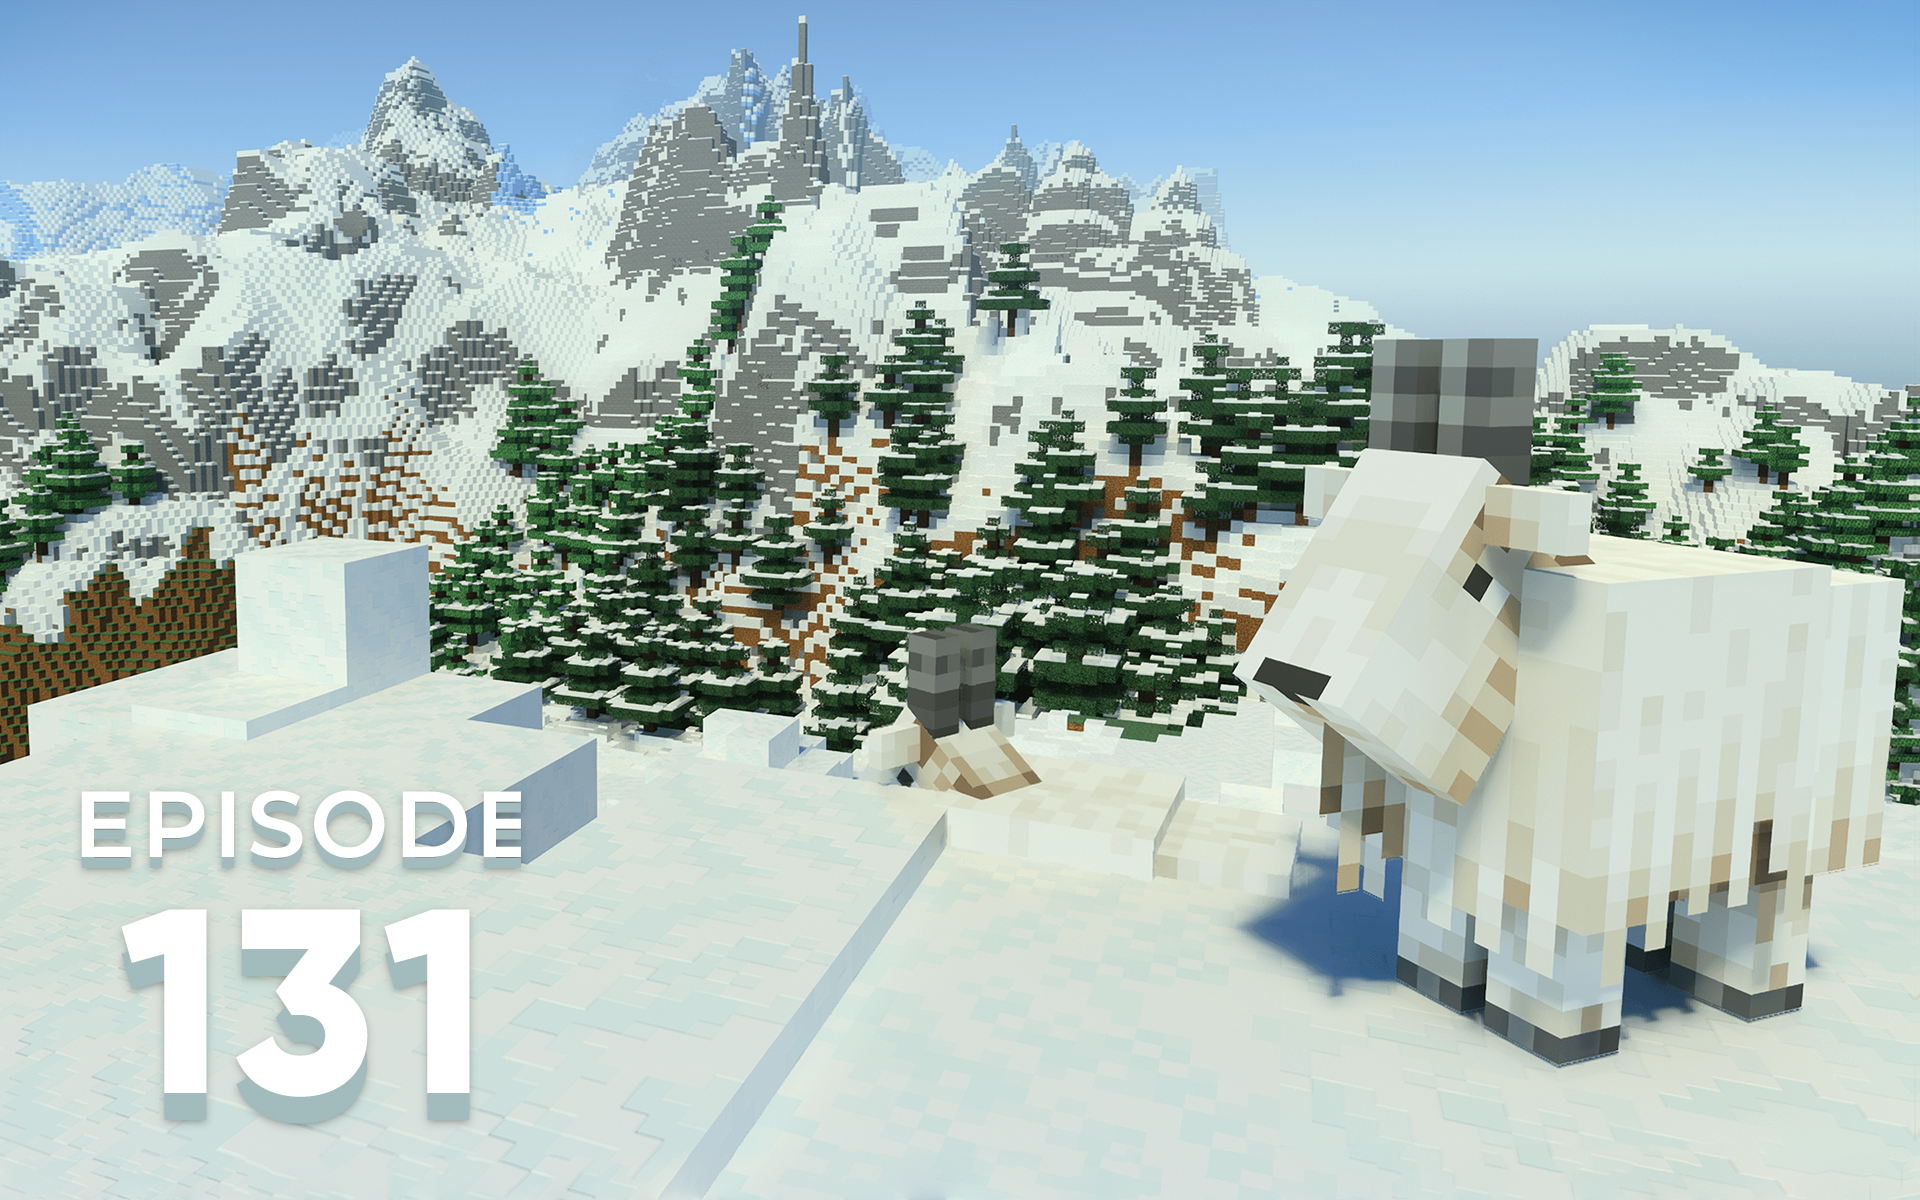 The Spawn Chunks 131: Ain't No Mountain High Enough